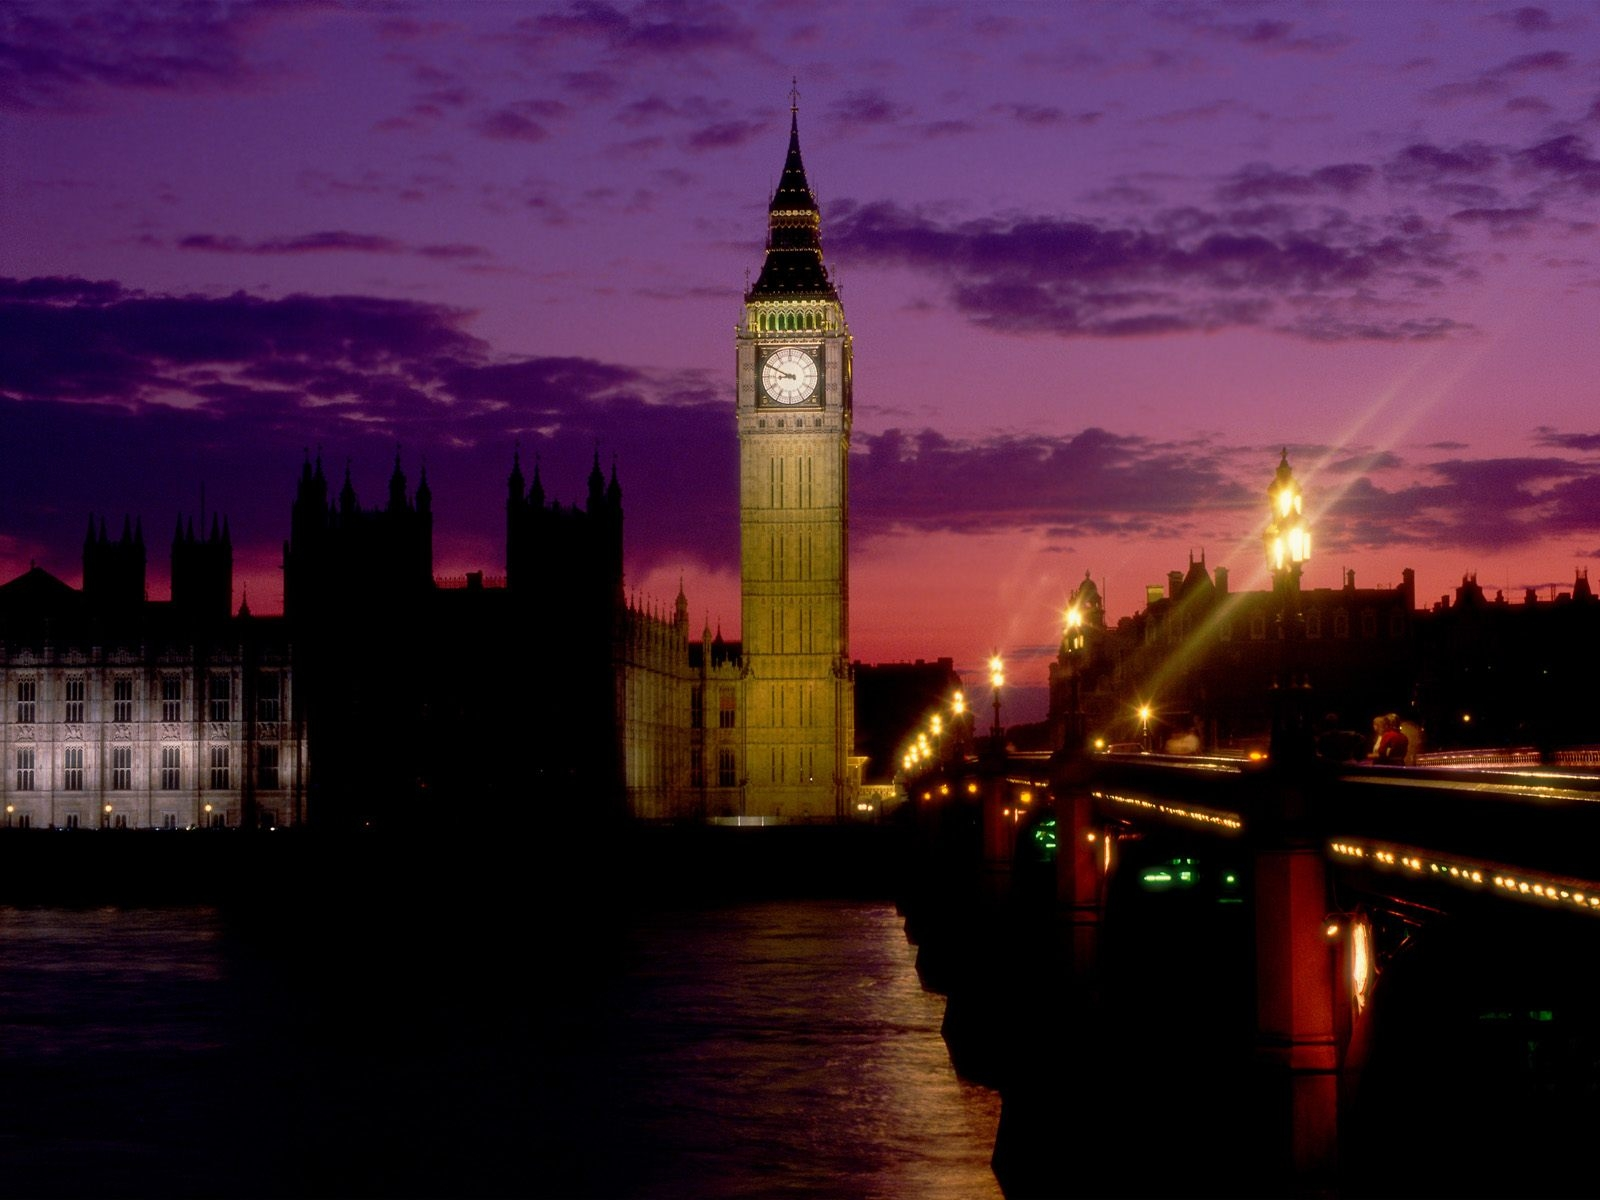 BigBen London 710.29 Kb